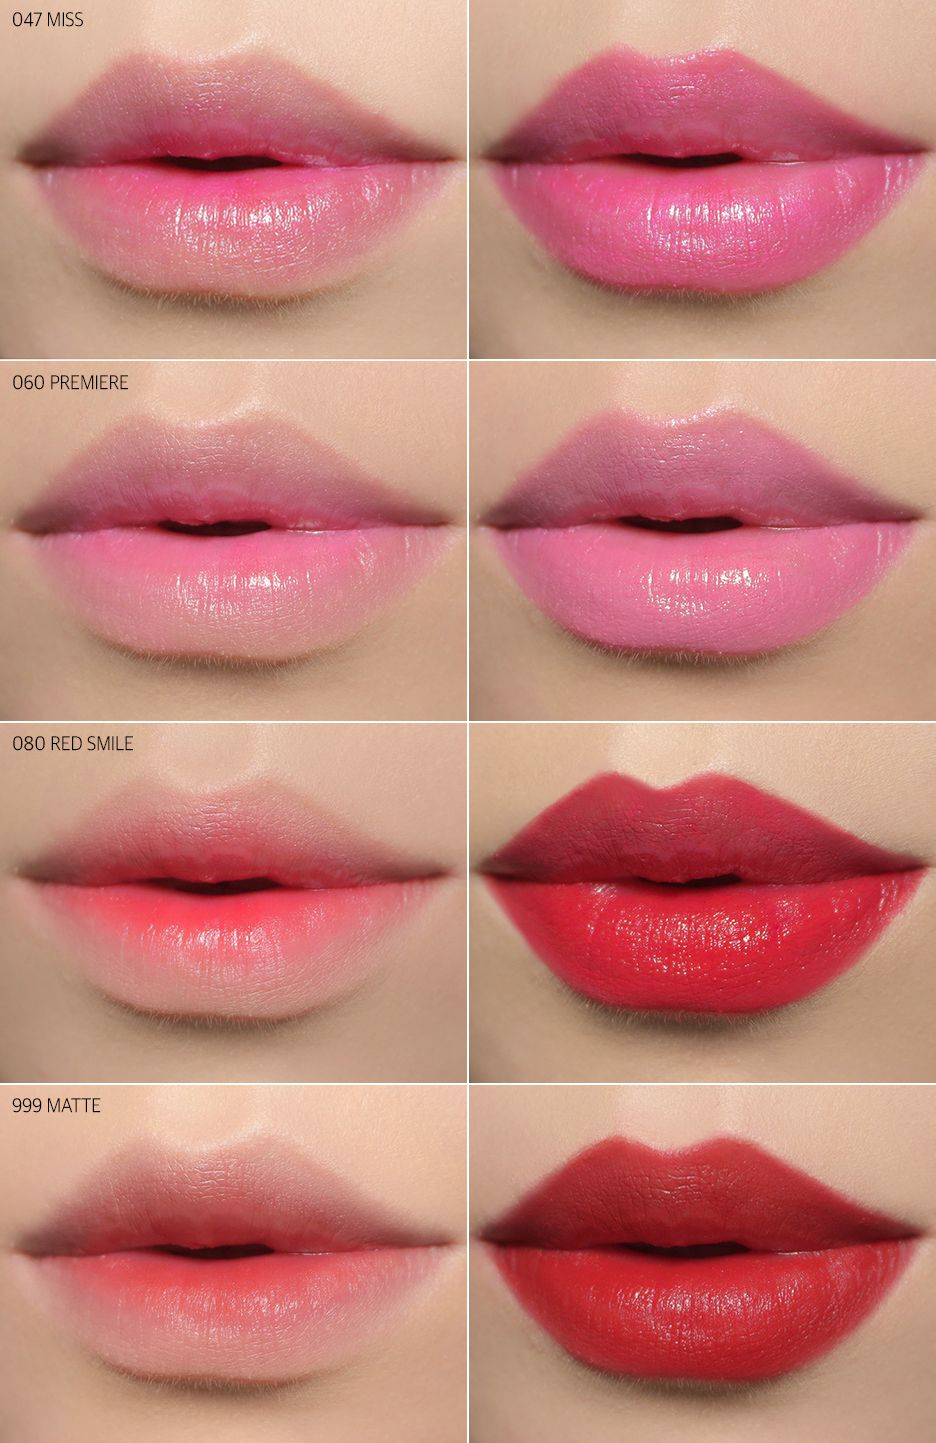 Dior Lip Tattoo Colors